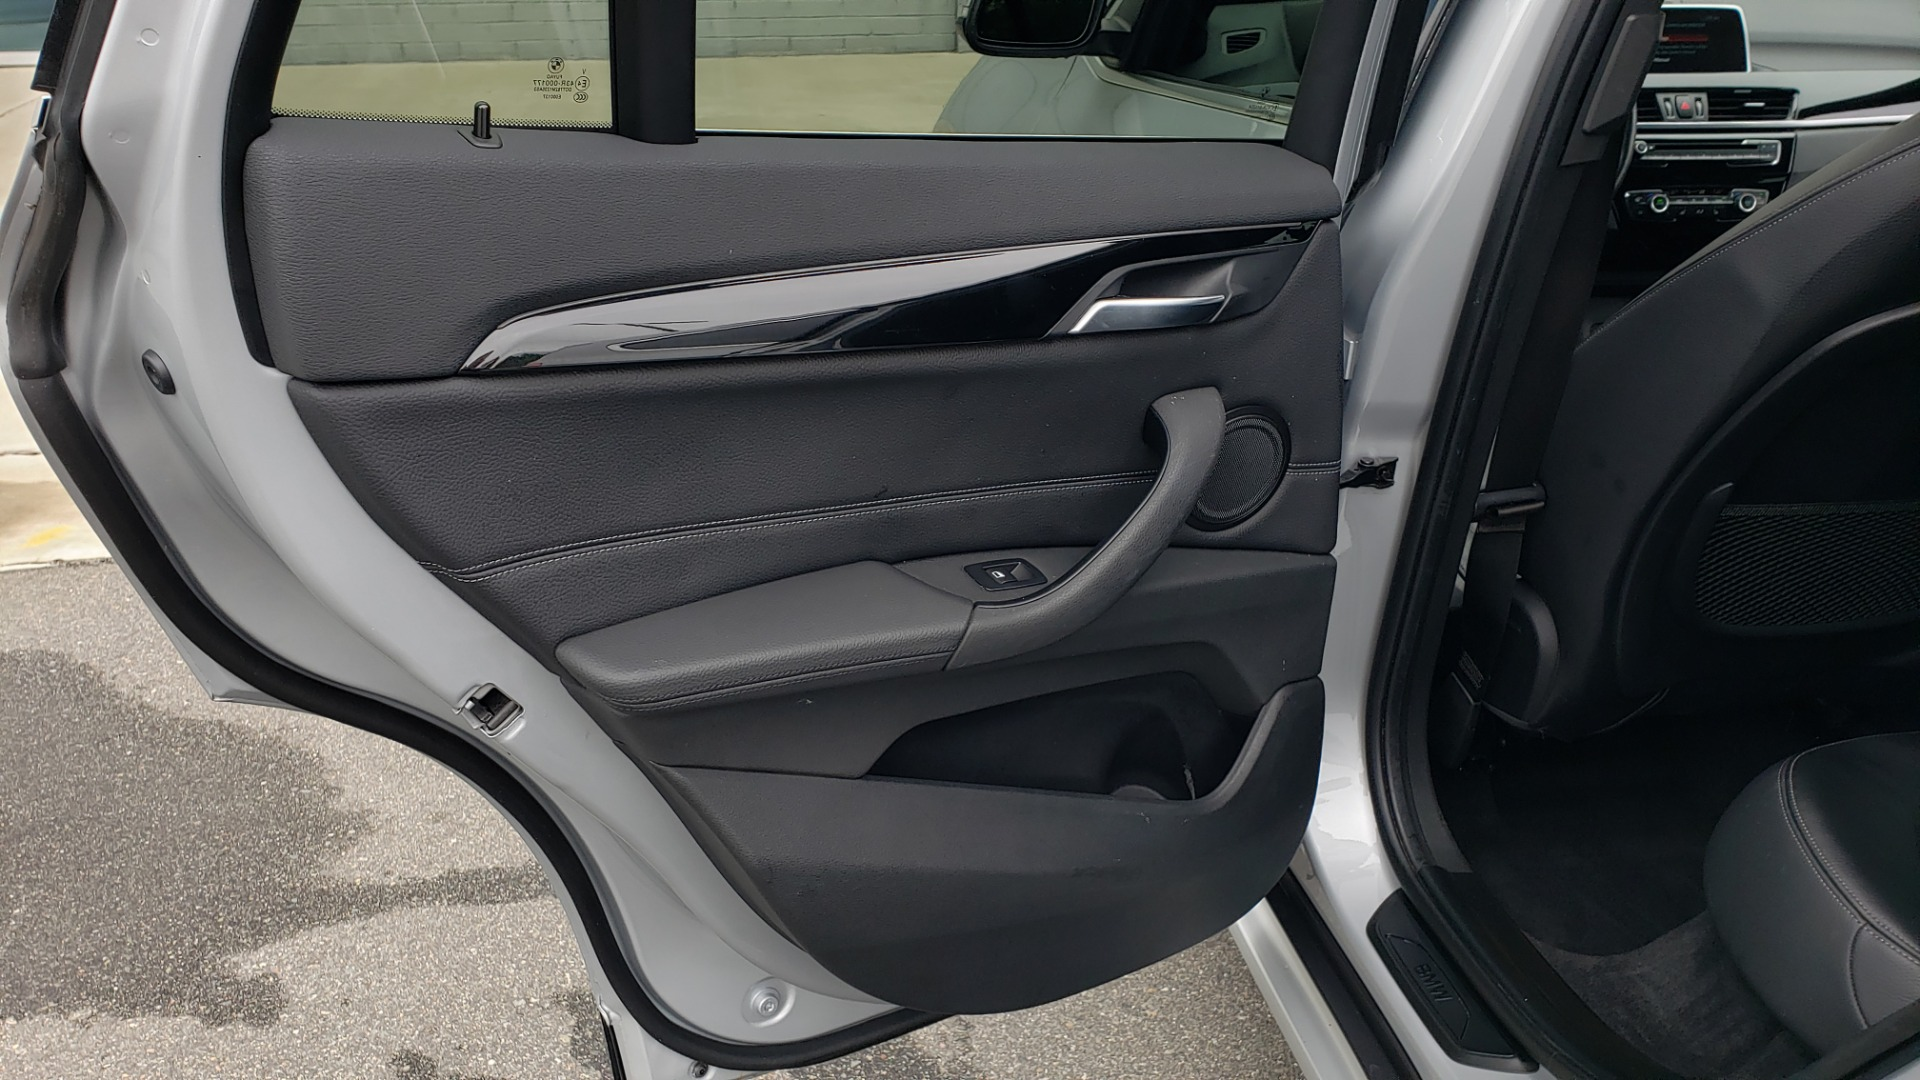 Used 2018 BMW X1 XDRIVE38I / NAV / CONV PKG / PANO-ROOF / HTD STS / REARVIEW for sale $28,995 at Formula Imports in Charlotte NC 28227 56